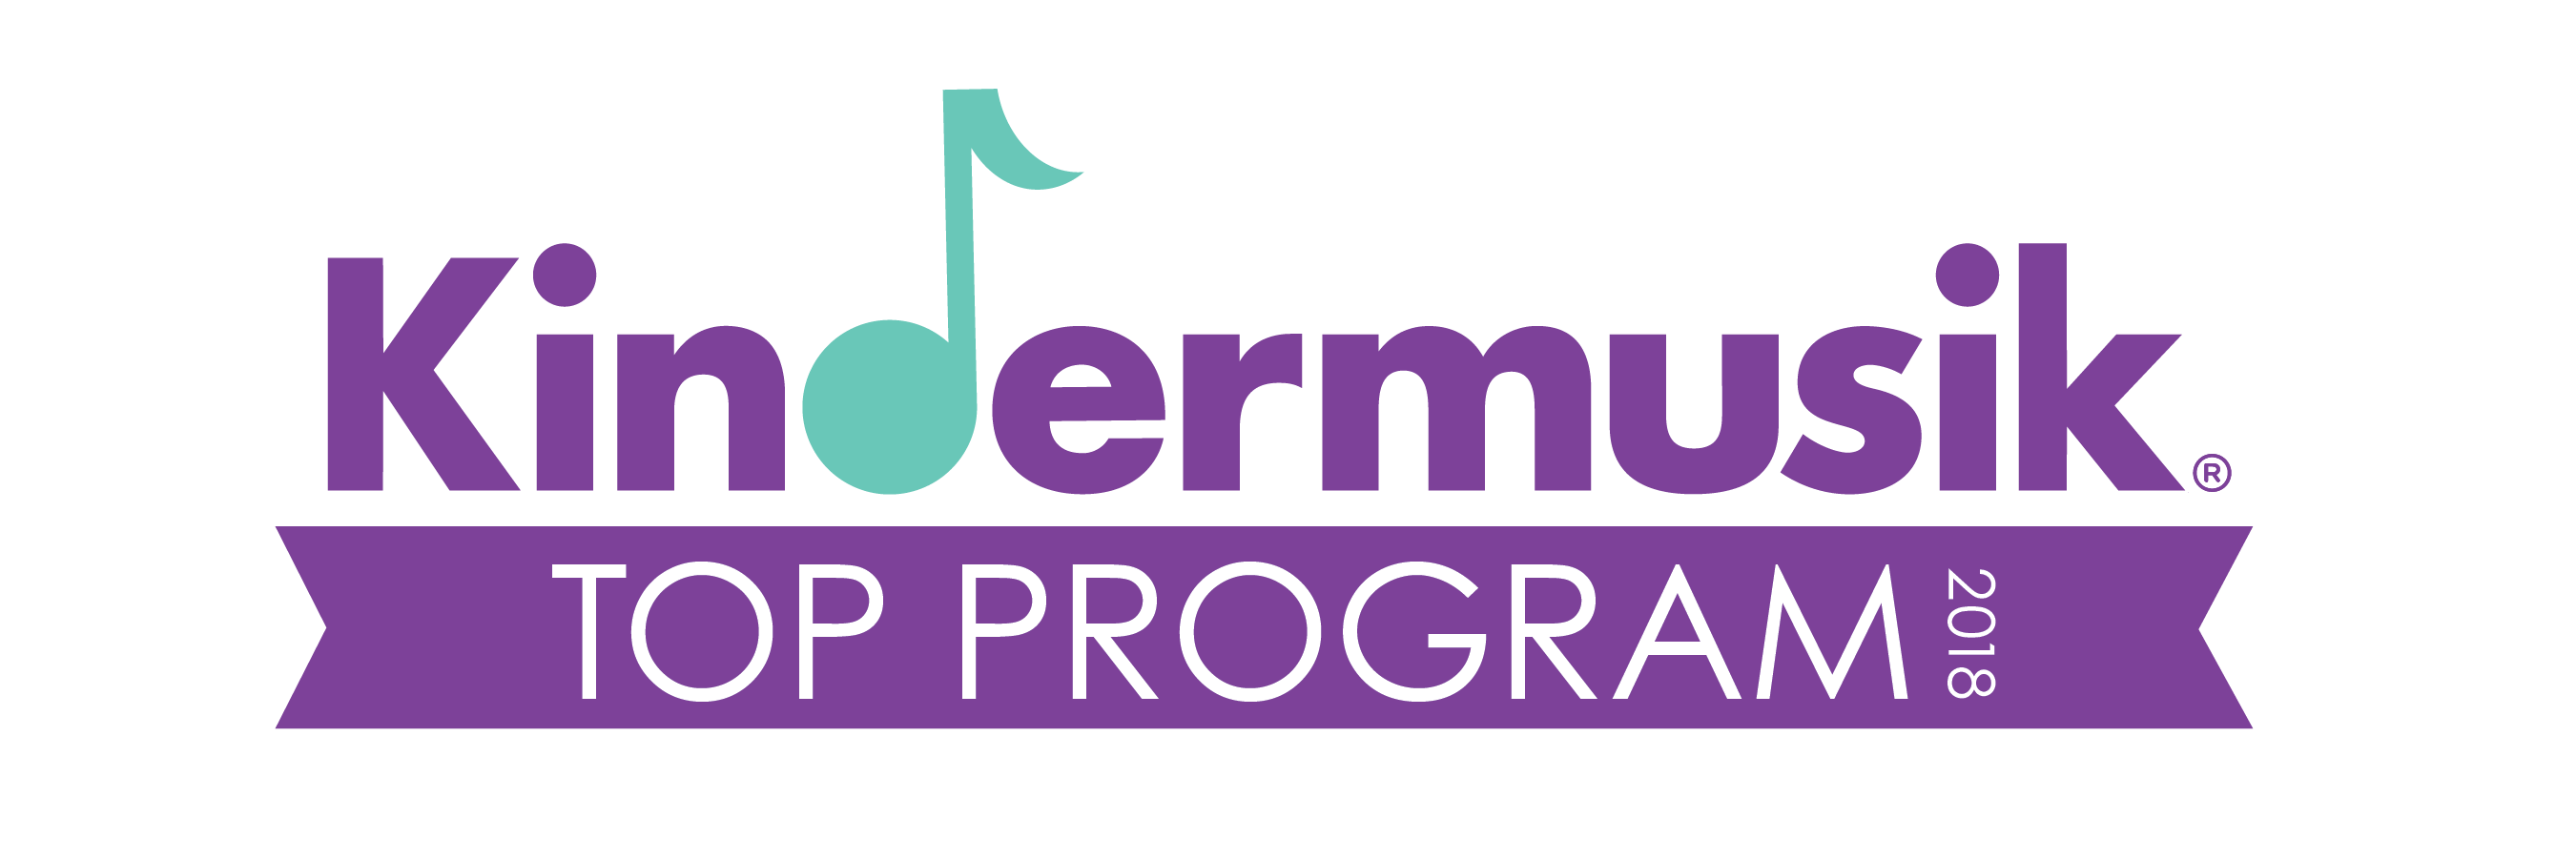 Kindermusik Maestro Top Program Award